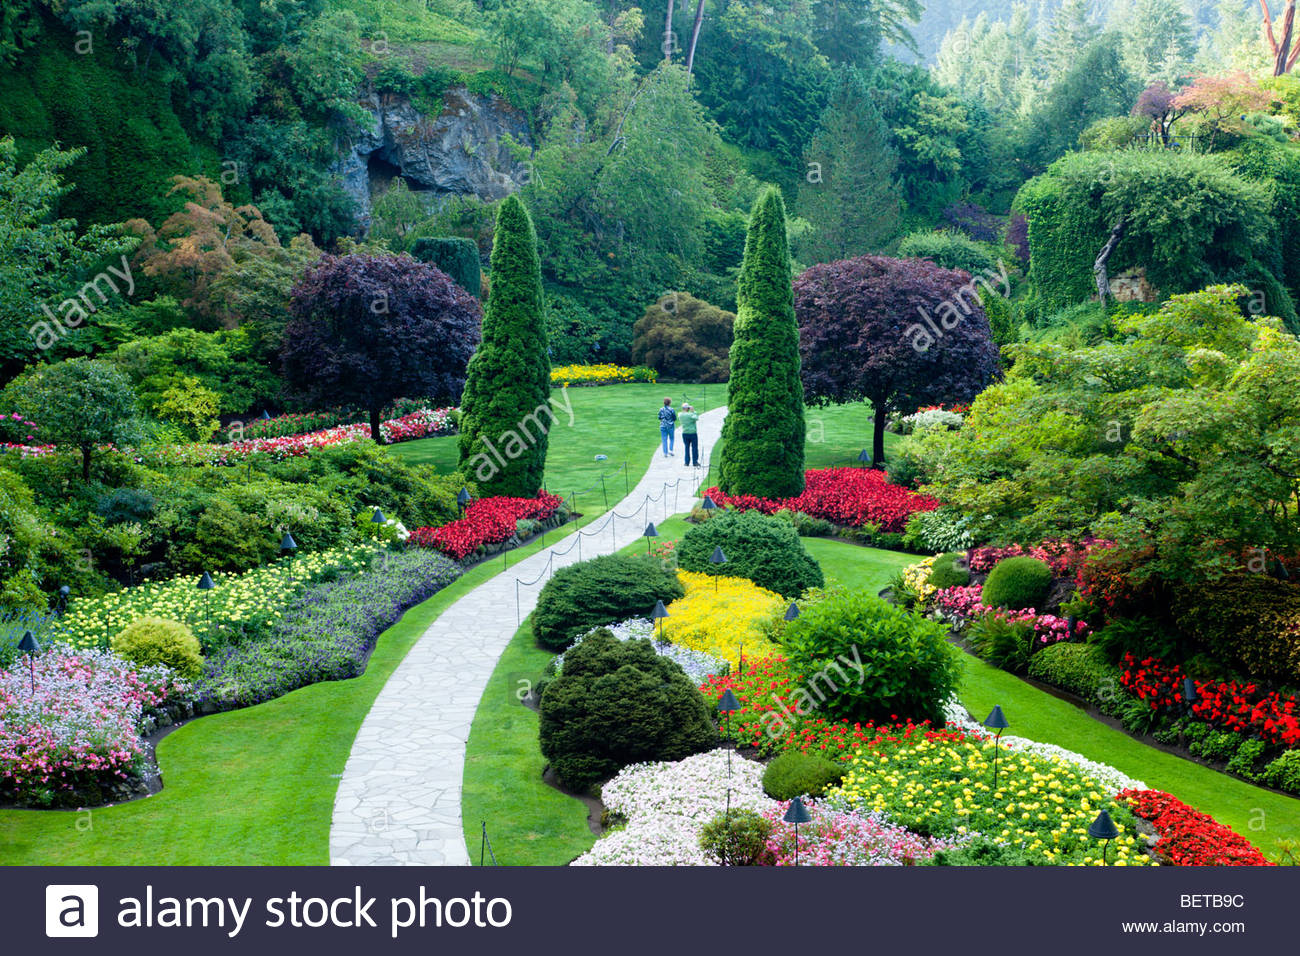 Sunken Garden At The Butchart Gardens Brentwood Bay